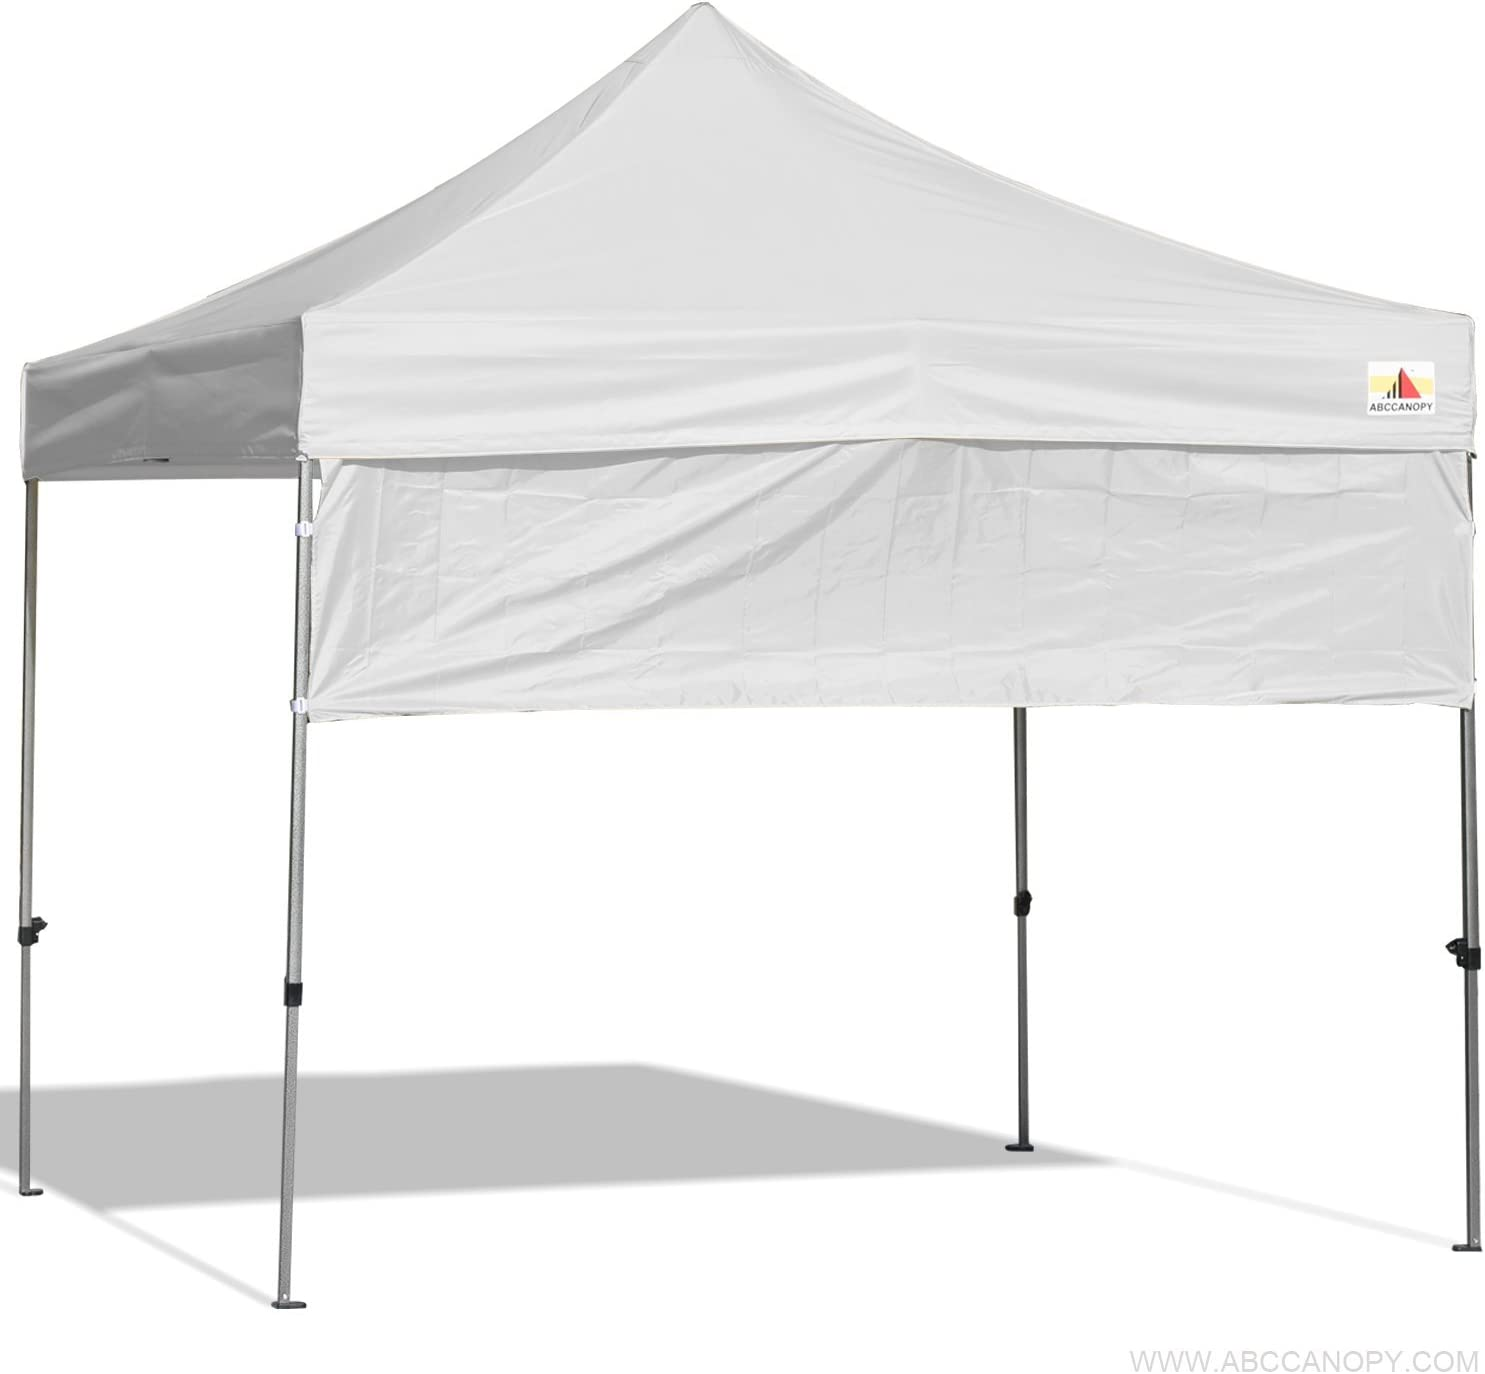 ABCCANOPY 10×10 Canopy Tent Awning White